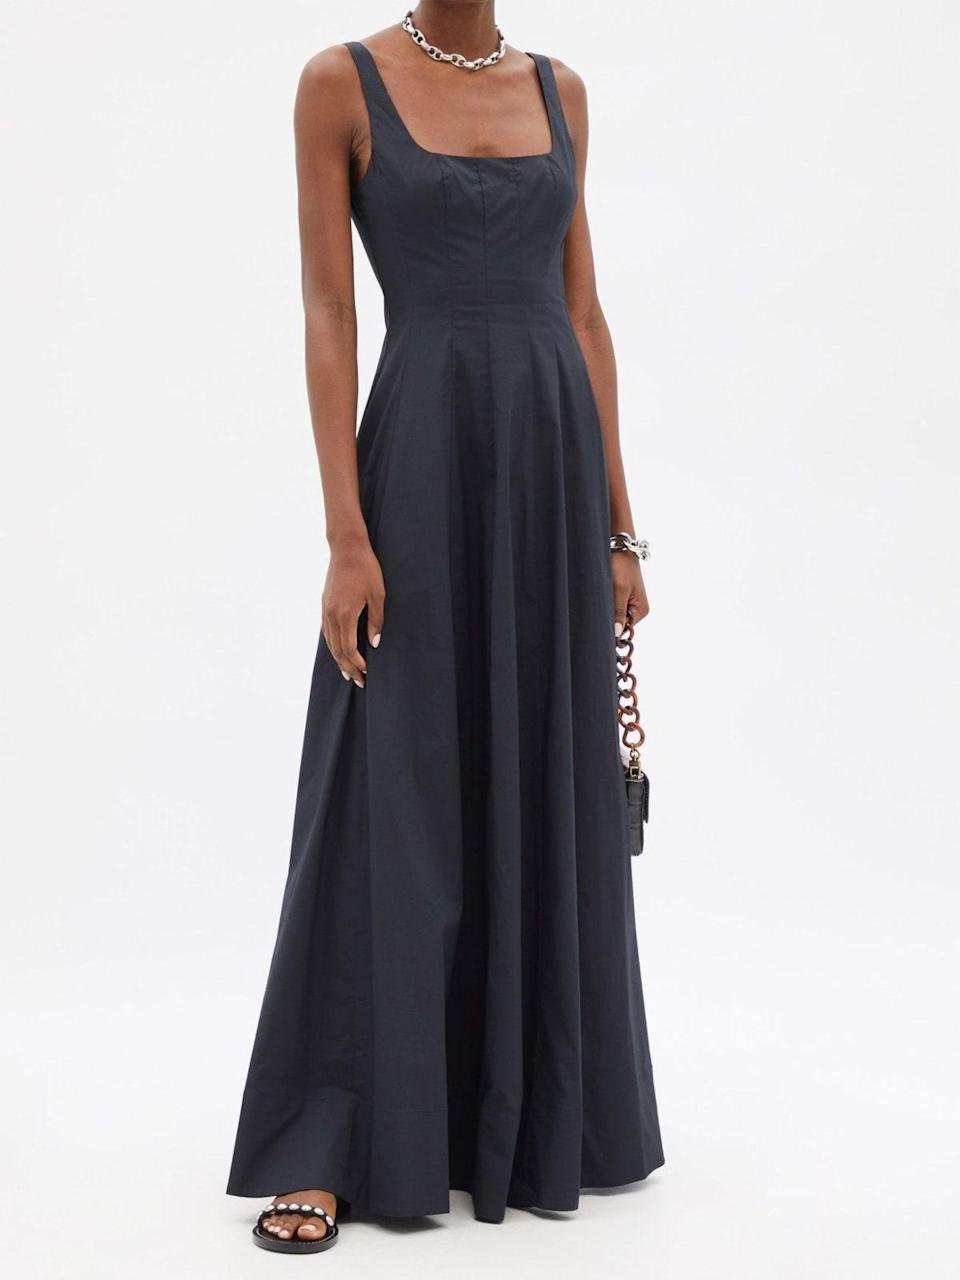 """Let's take a moment to appreciate this floor-length gown that's perfect for fall and winter weddings. The minimalist A-line silhouette is a mainstay in the Staud collection—and in classic black, its versatility knows no bounds. Add a <a href=""""https://www.glamour.com/story/best-affordable-jewelry-brands?mbid=synd_yahoo_rss"""" rel=""""nofollow noopener"""" target=""""_blank"""" data-ylk=""""slk:chunky chain"""" class=""""link rapid-noclick-resp"""">chunky chain</a> to play up the square neckline, or revel in its simplicity with a statement cuff and <a href=""""https://www.glamour.com/gallery/tiny-bags-trend?mbid=synd_yahoo_rss"""" rel=""""nofollow noopener"""" target=""""_blank"""" data-ylk=""""slk:tiny bag"""" class=""""link rapid-noclick-resp"""">tiny bag</a>. $295, Matches Fashion. <a href=""""https://www.matchesfashion.com/us/products/Staud-Wells-cotton-poplin-maxi-dress-1436093"""" rel=""""nofollow noopener"""" target=""""_blank"""" data-ylk=""""slk:Get it now!"""" class=""""link rapid-noclick-resp"""">Get it now!</a>"""